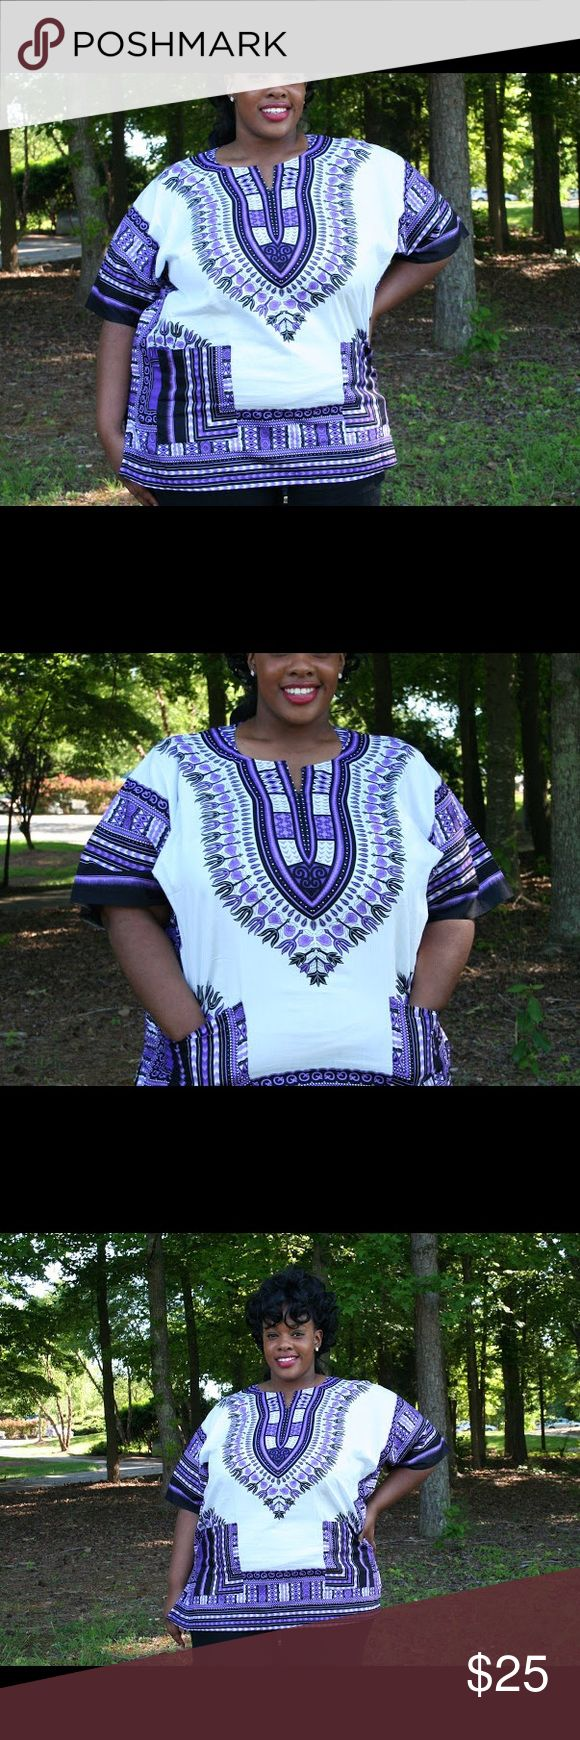 Plus Size Dashiki Dress New Unisex Black and green Dashiki shirt. This shirt is available in 1X, 2X and 3X.   Features 2 front pockets and 2 side slits for style and comfort. It is made with 100% cotton.   This Dashiki Shirt is available in Orange, Green, Purple, Yellow and Blue. Tops Blouses